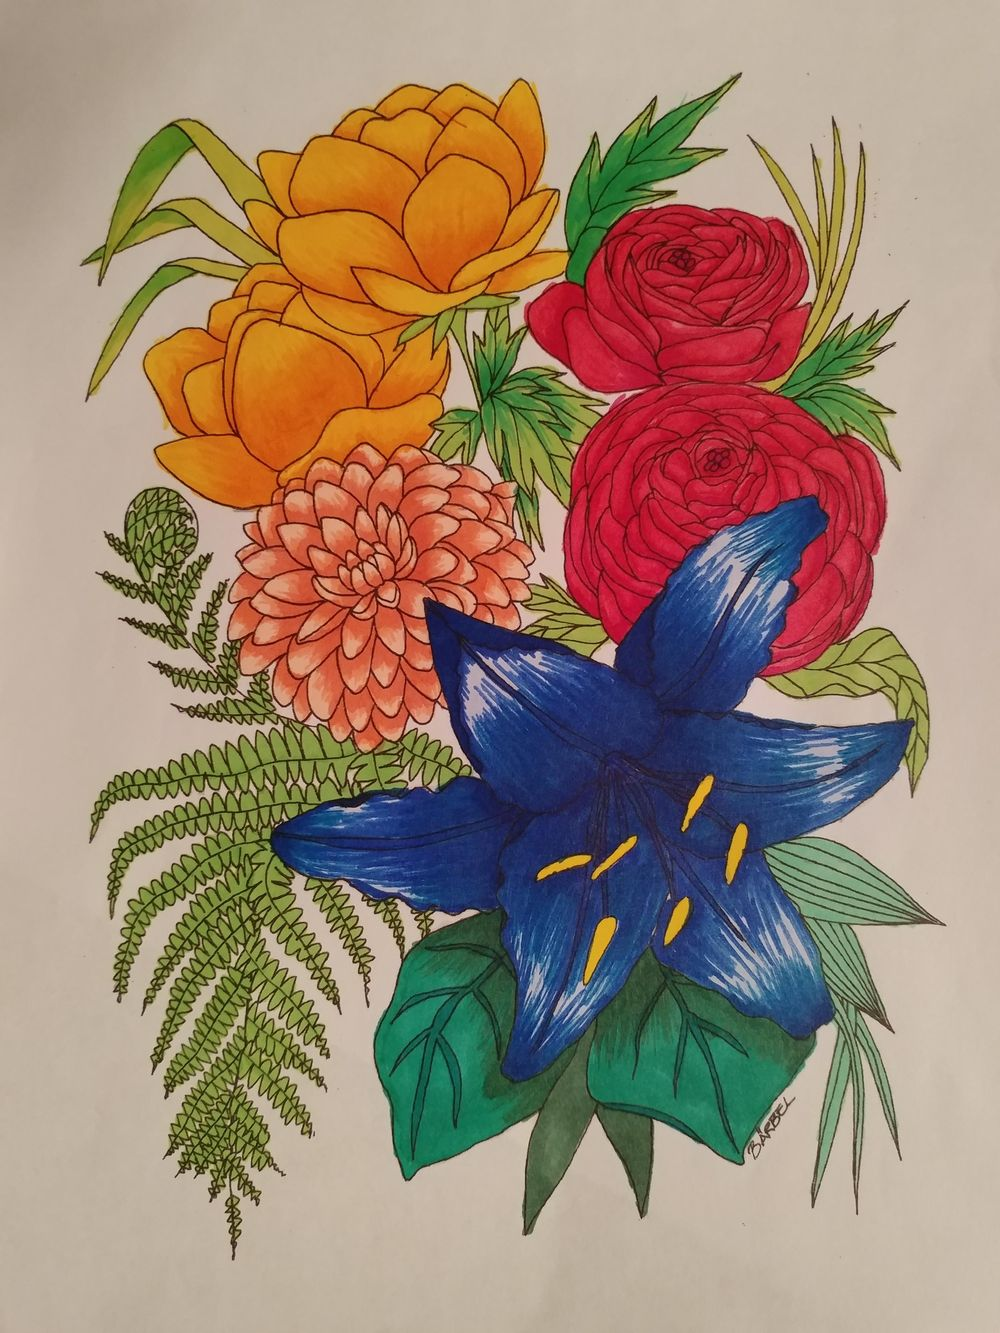 Colored flowers - image 1 - student project